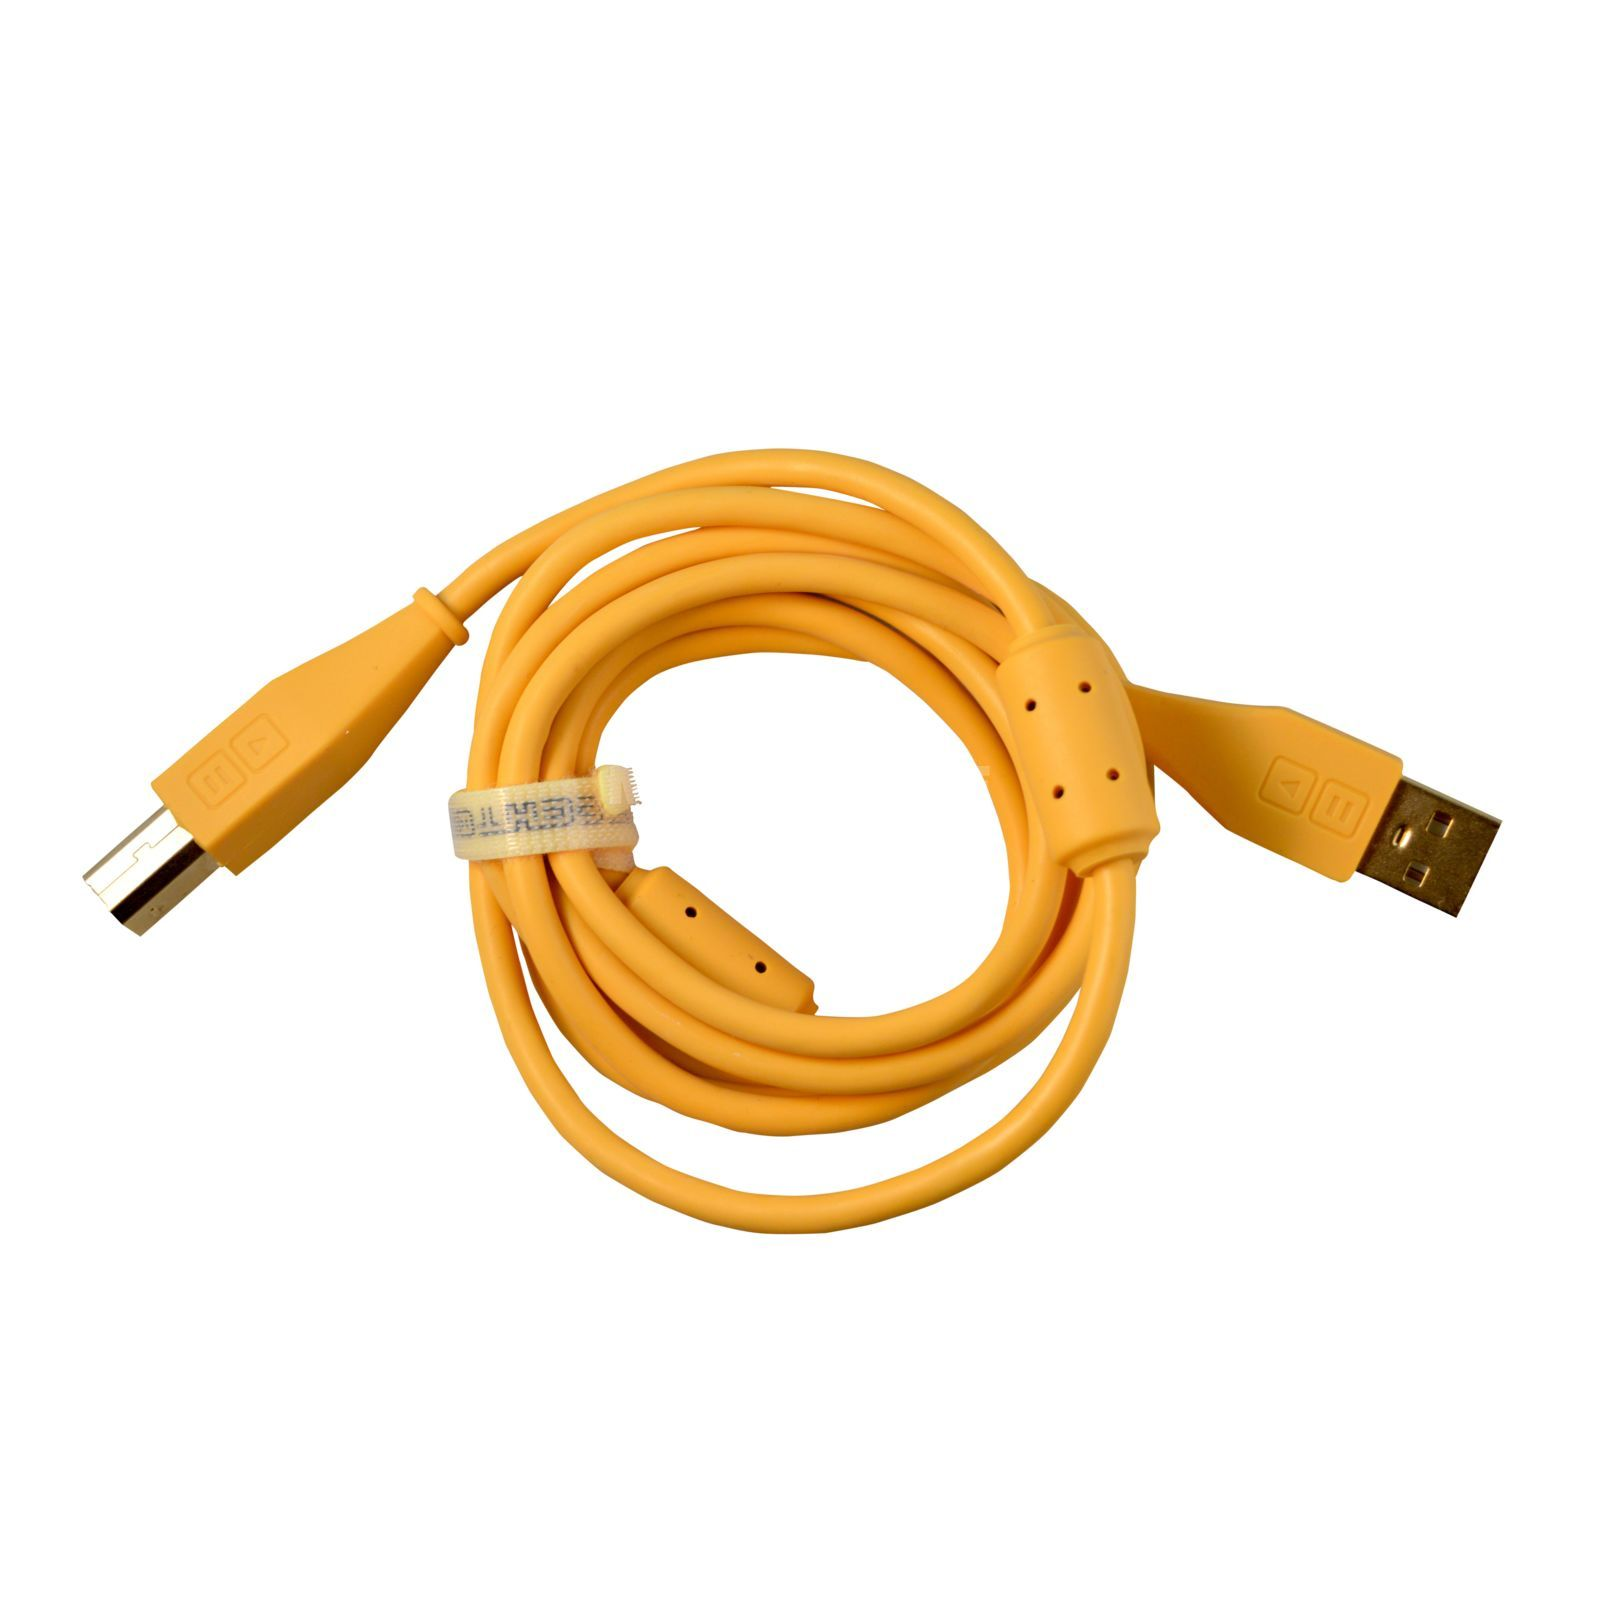 DJ TECHTOOLS DJTT USB Chroma Cable Orange 1.5m, straight Изображение товара